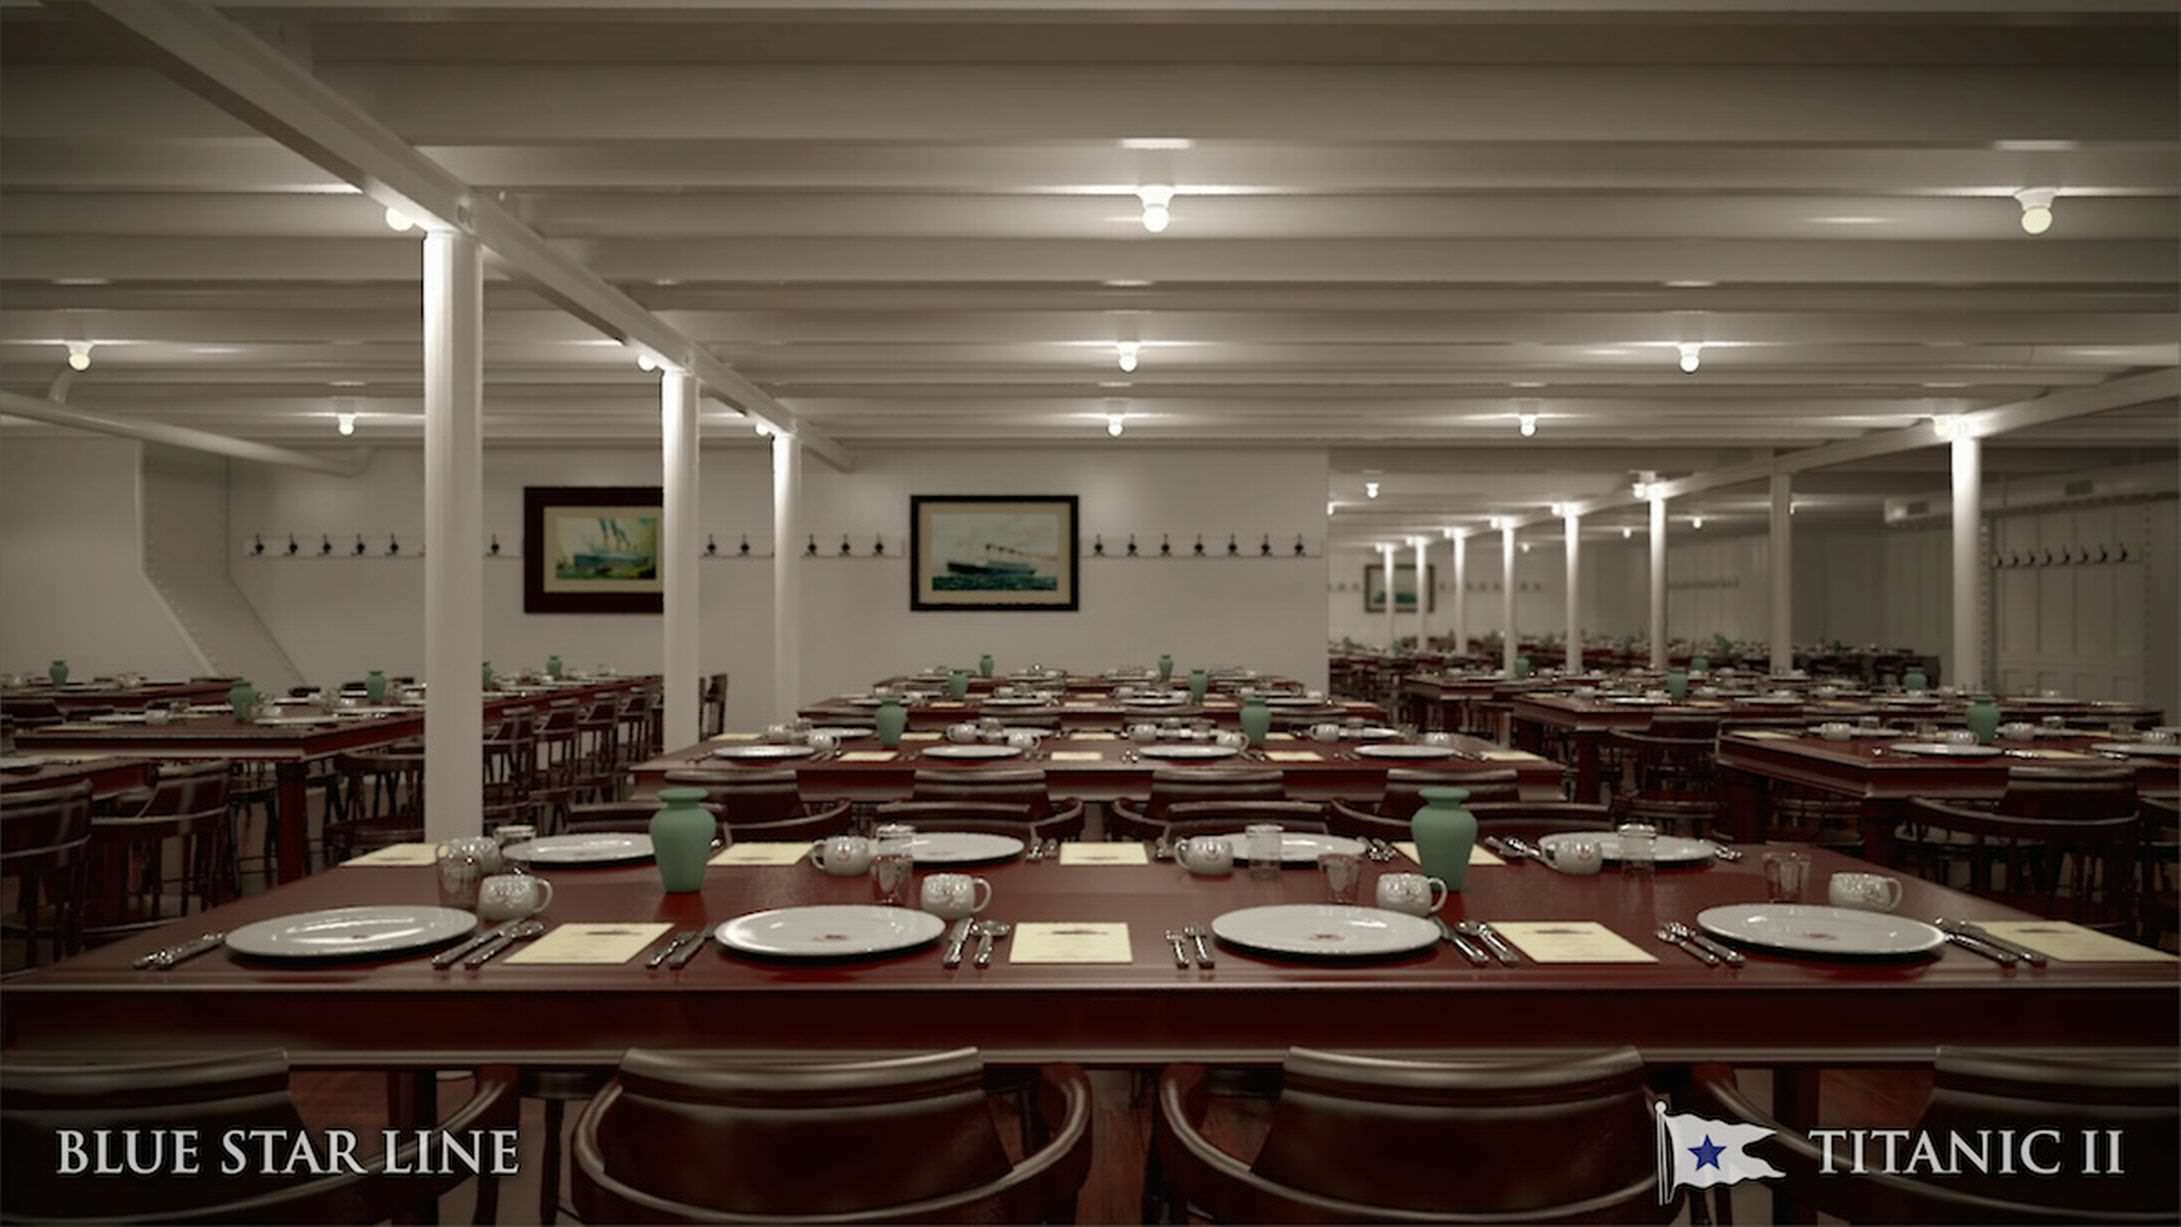 Incredible New Photos Give First Look Inside Titanic 2 titanic new 2